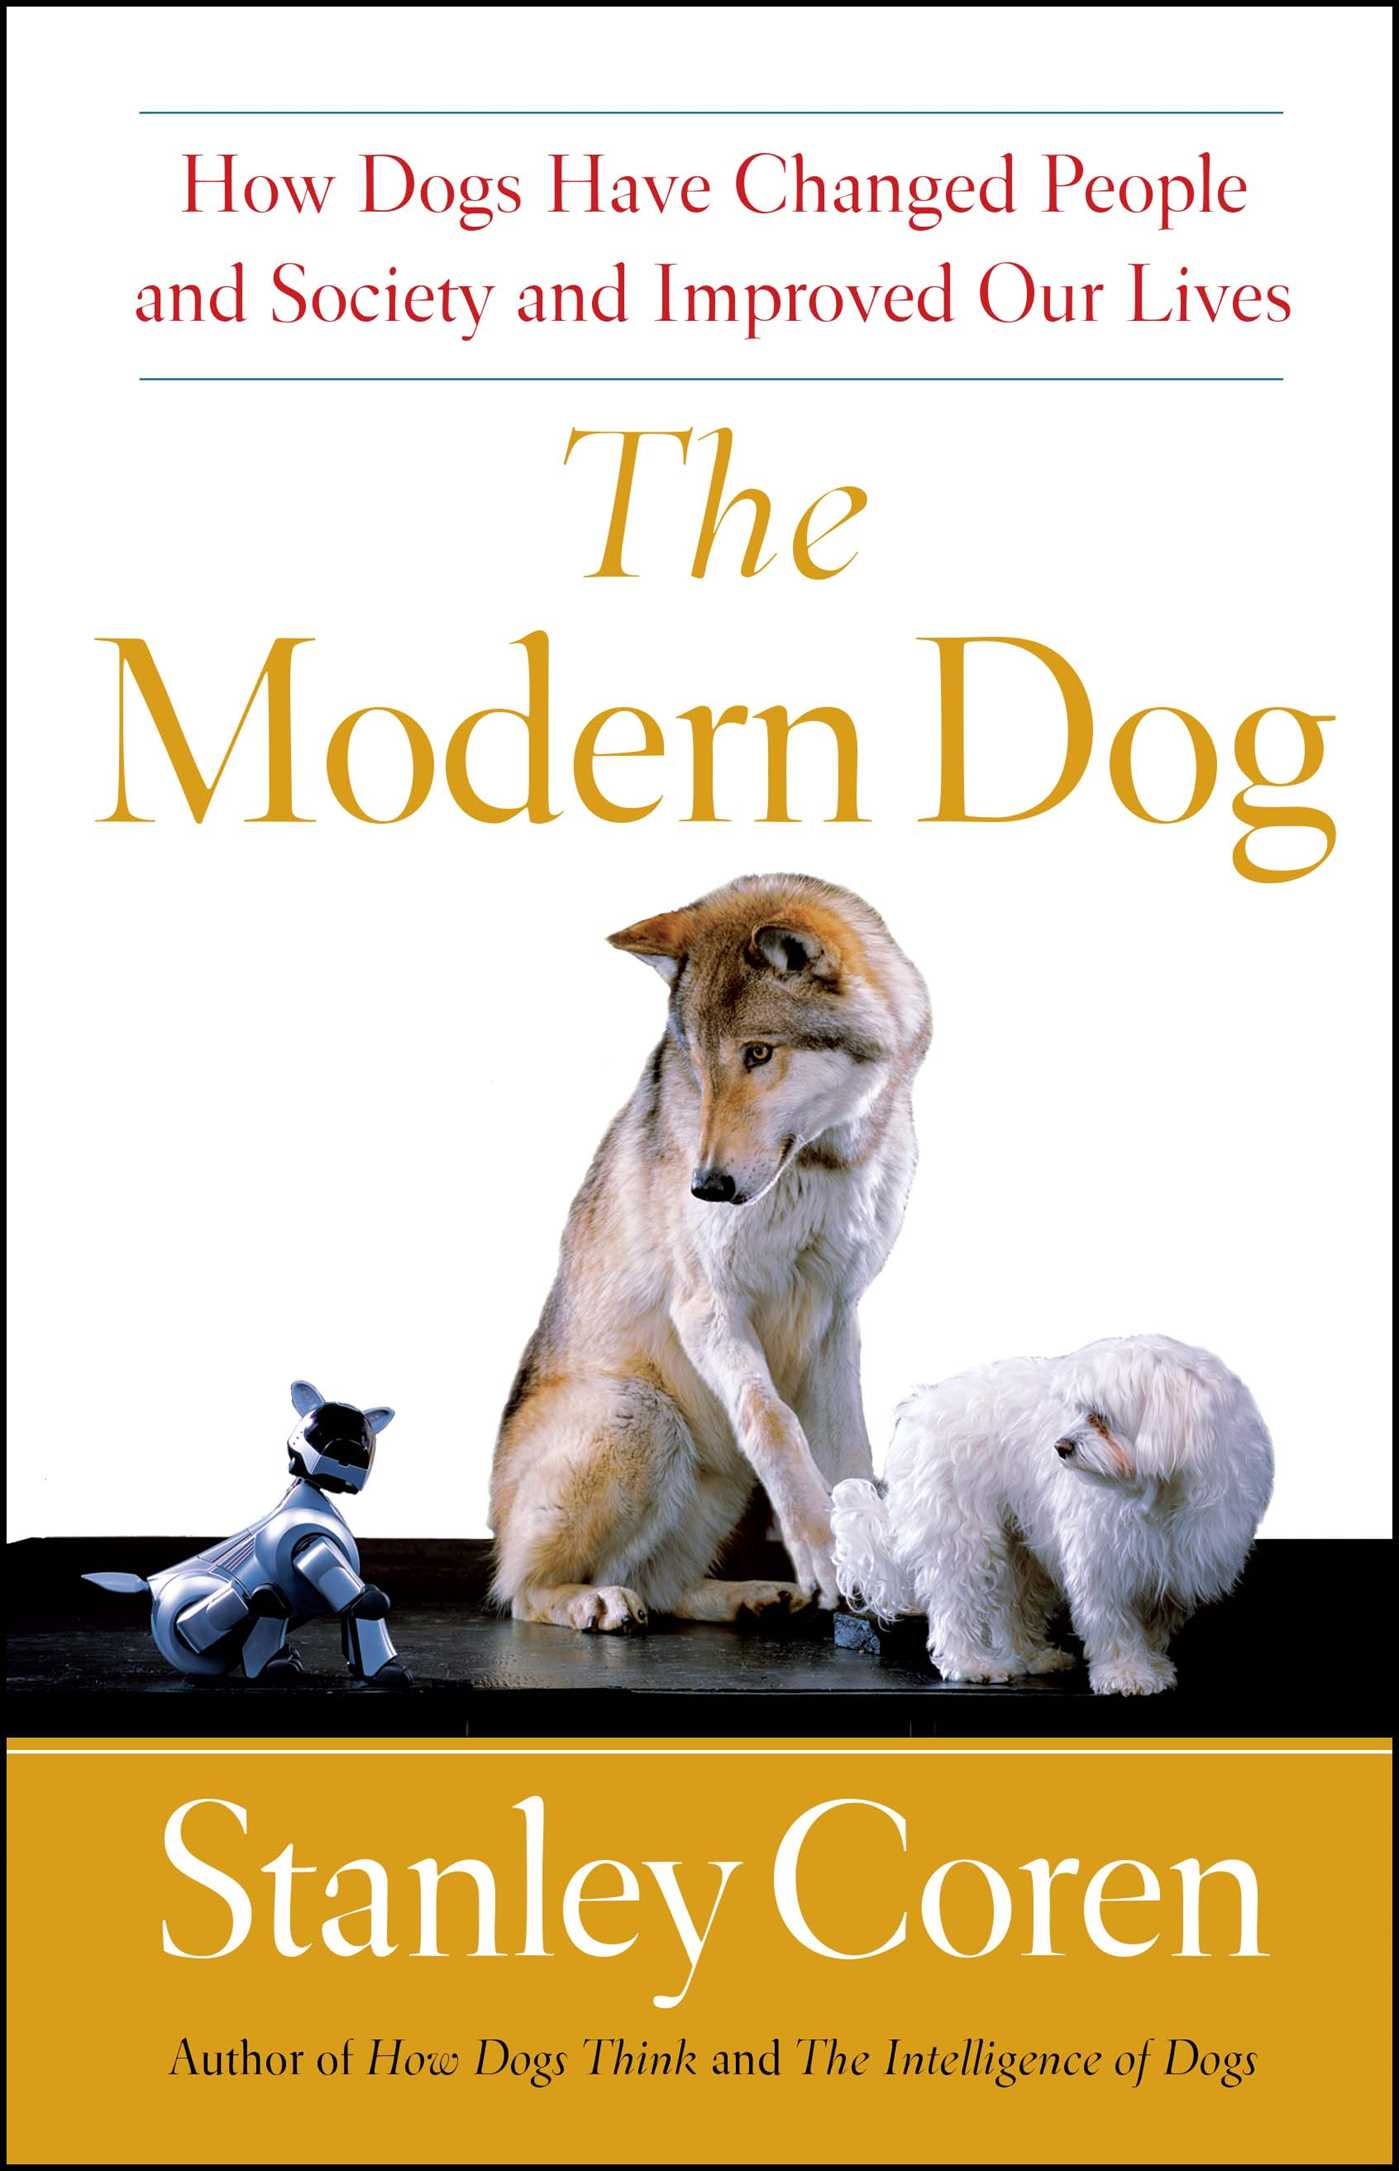 The modern dog 9781439152881 hr